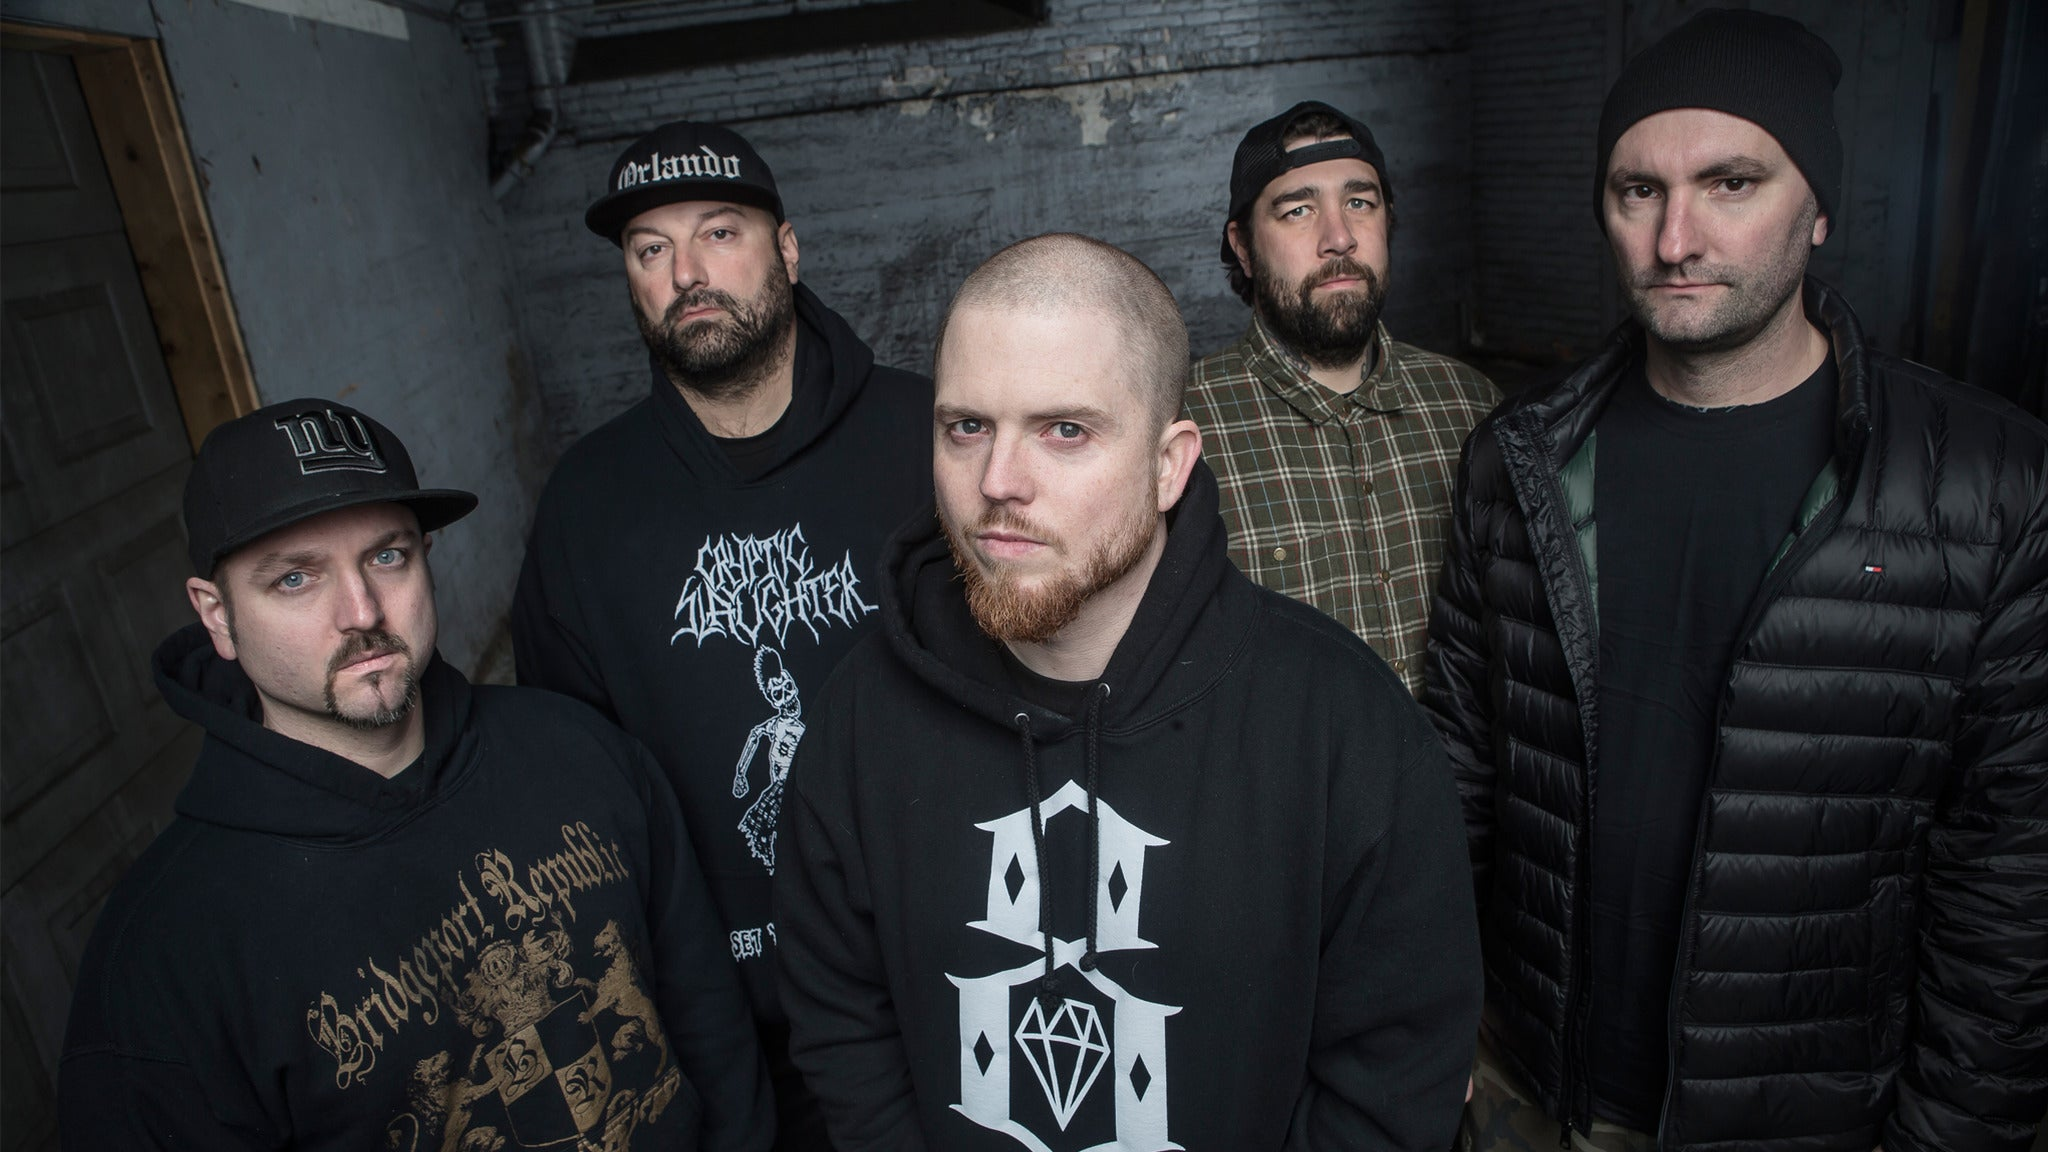 Hatebreed - 20 Years of Desire & 15 Years of Perseverance